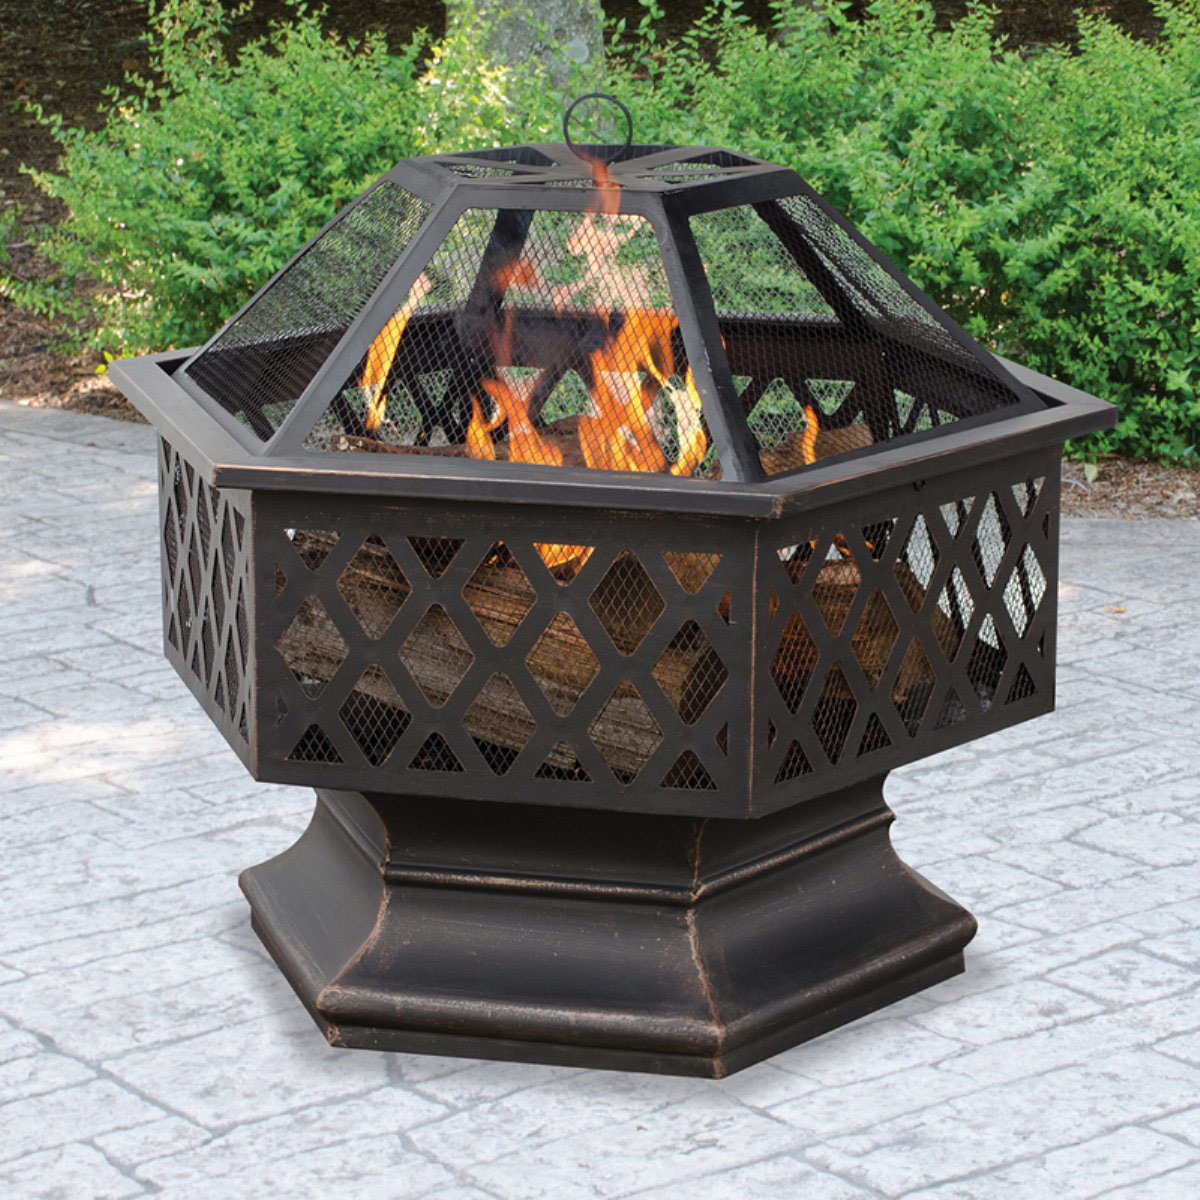 Nice Hex Shaped Fire Pit Outdoor Home Garden Backyard Firepit Bowl Fireplace Log  Wood